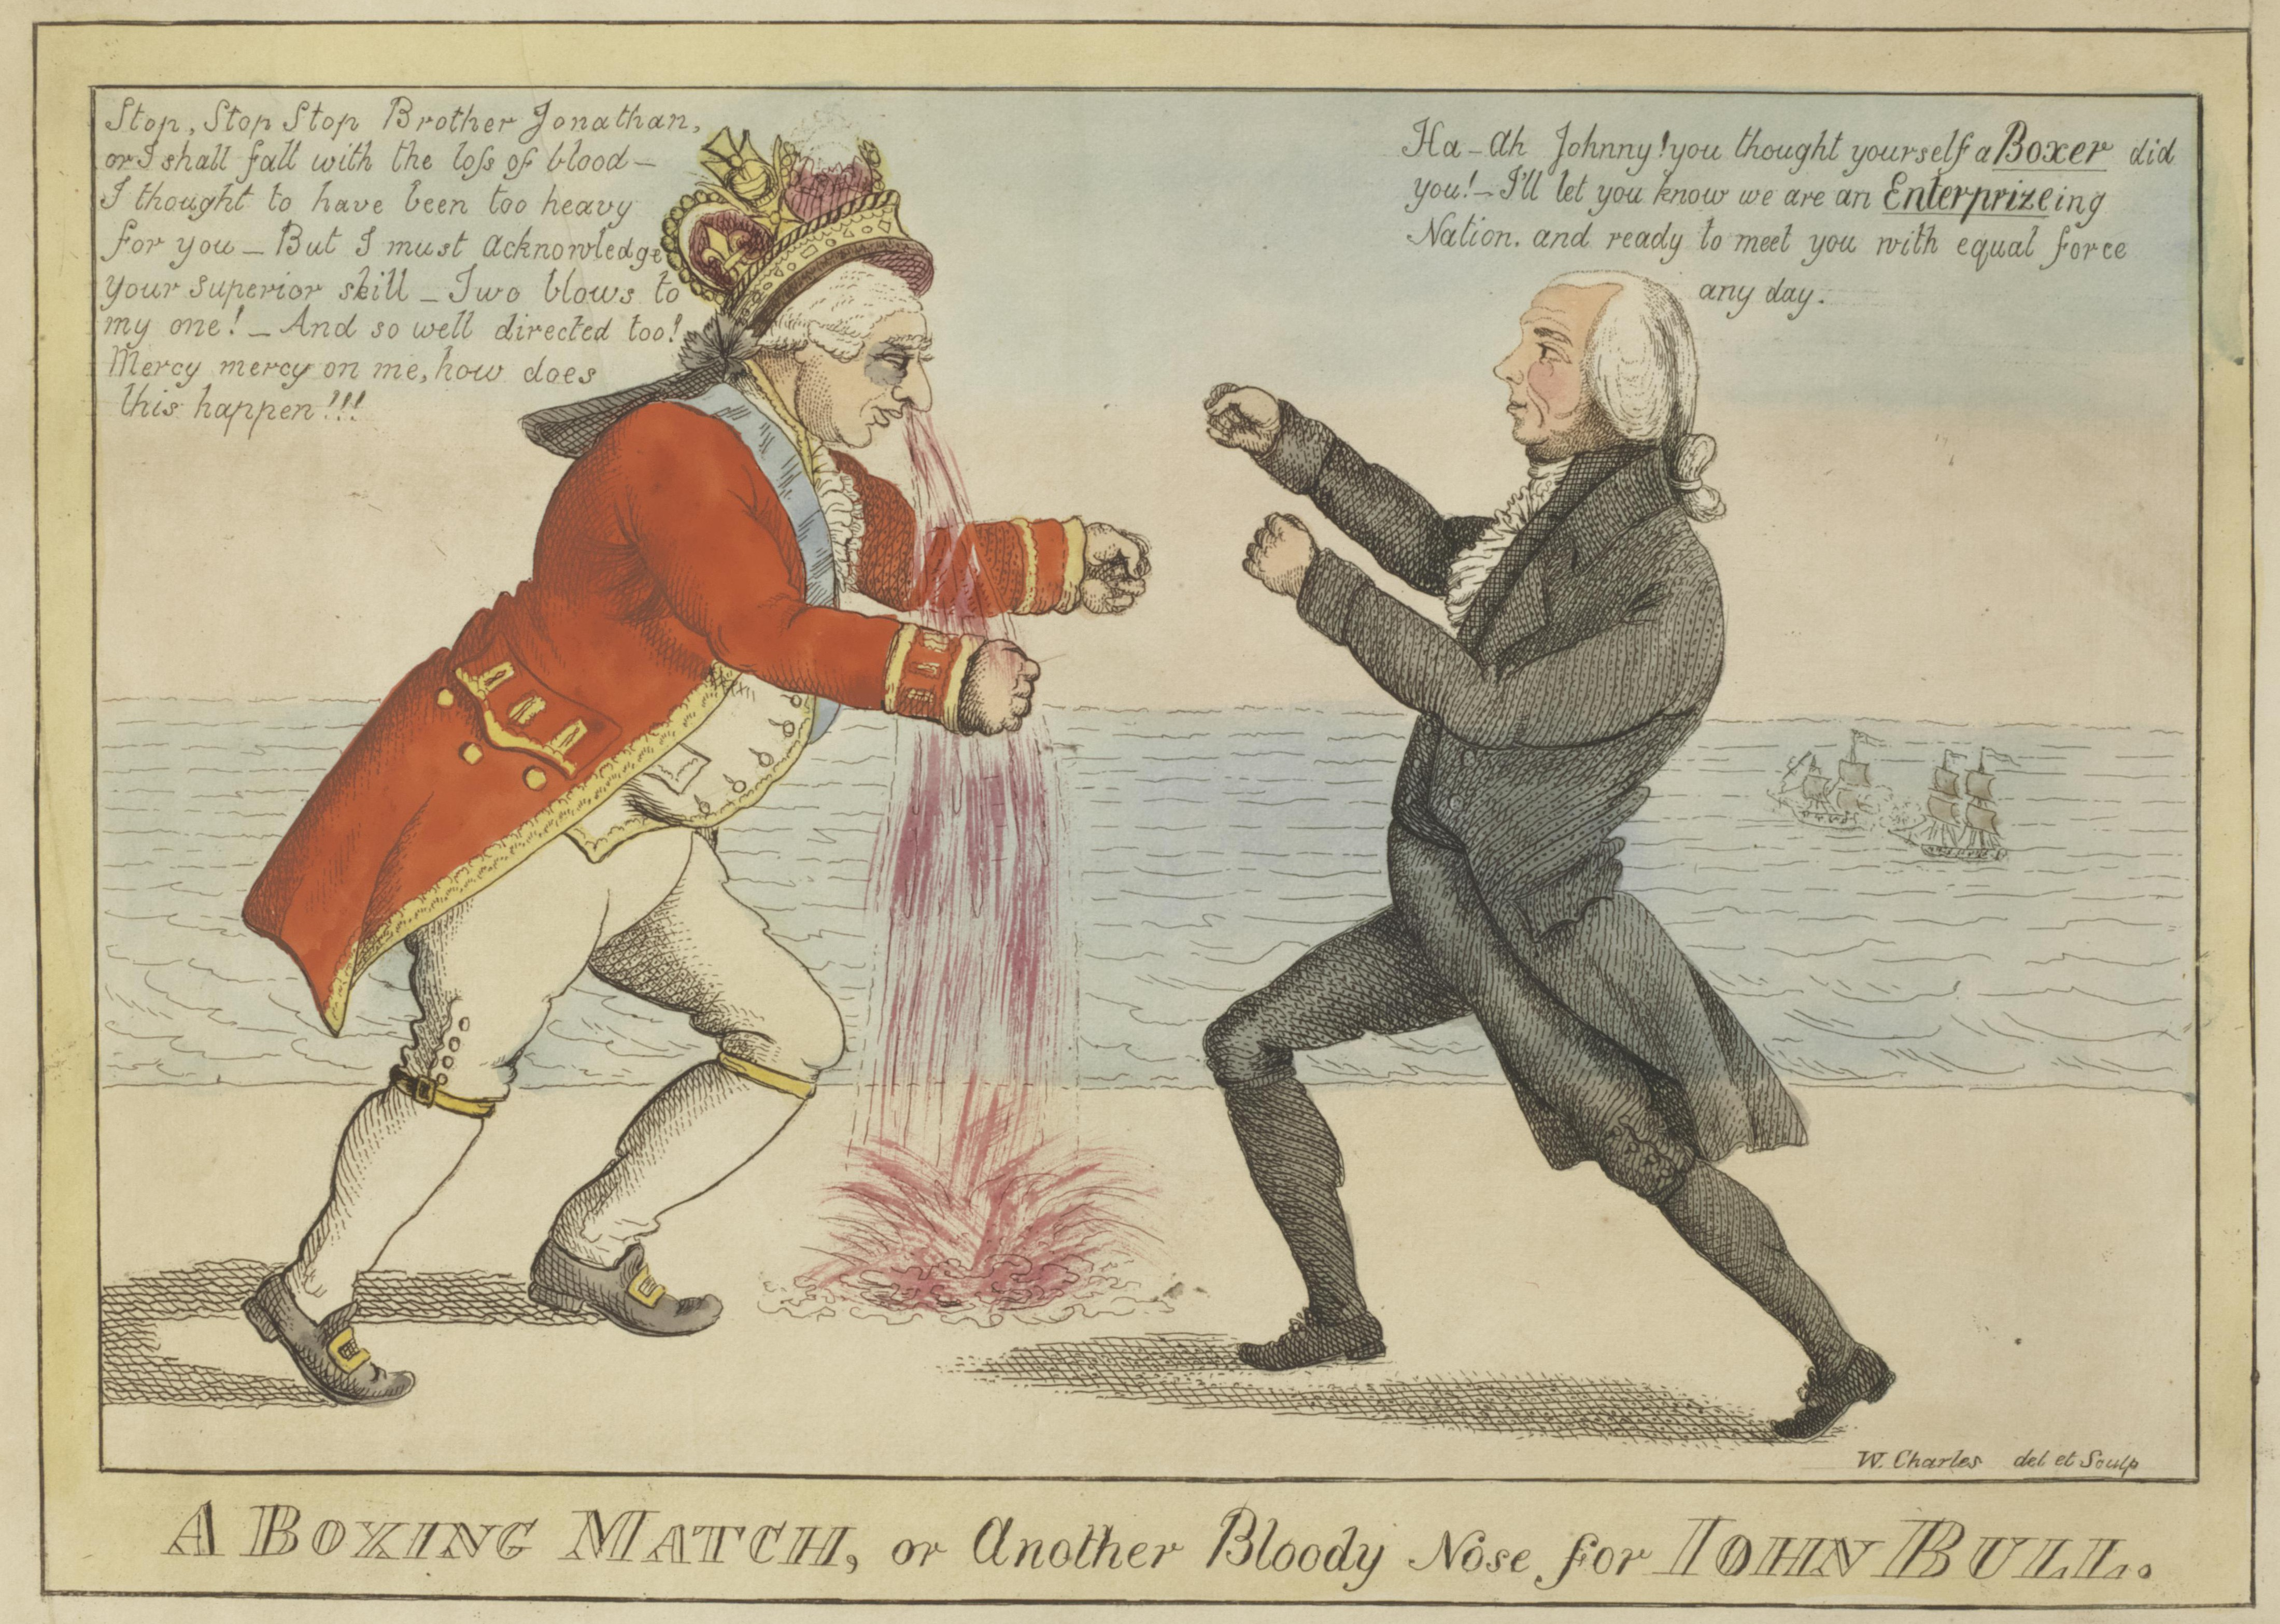 William Charles A Boxing Match Or Another Bloody Nose For John